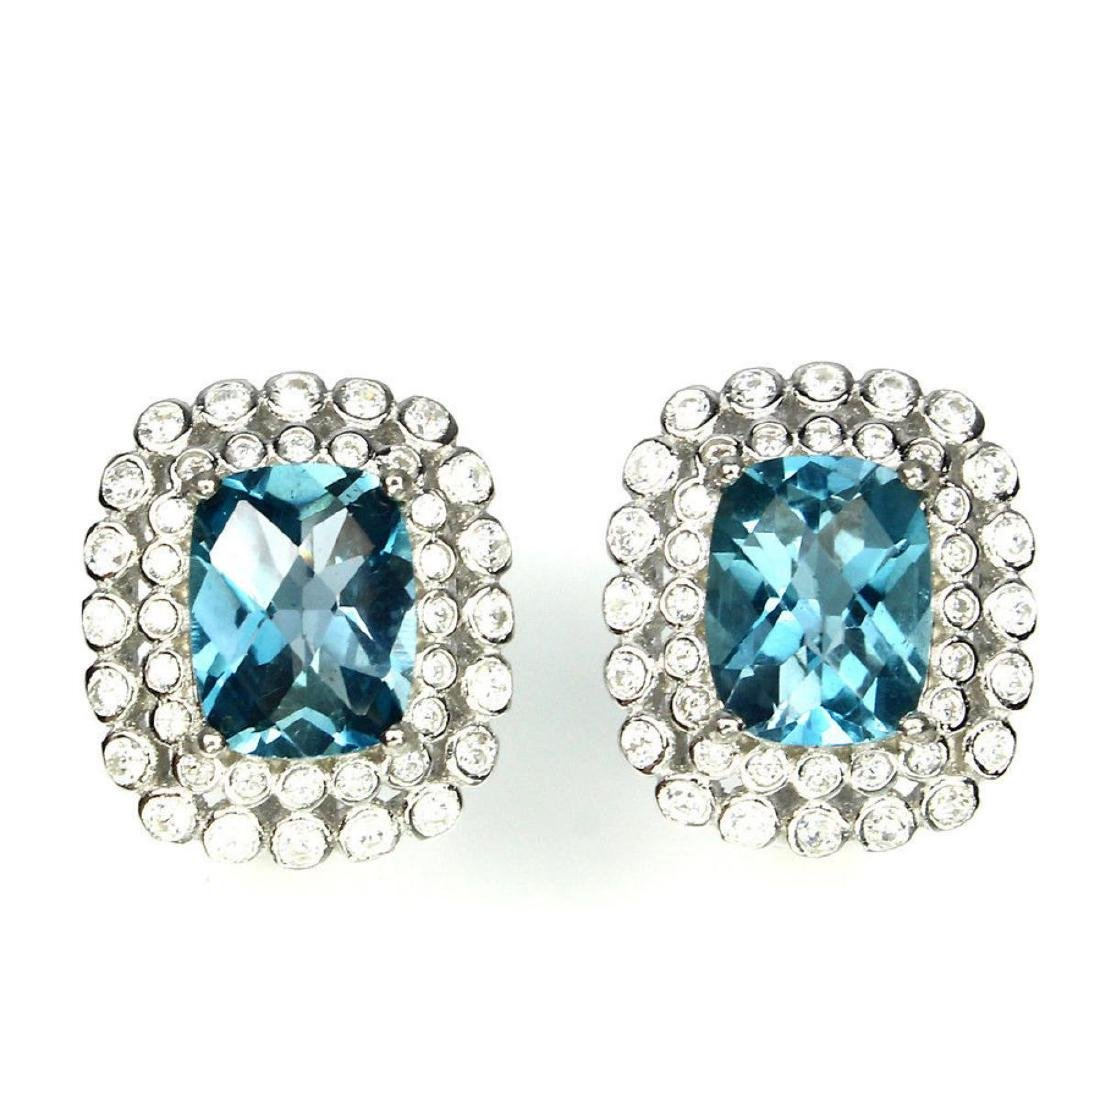 Natural 9x7mm Top London Blue Topaz Earrings